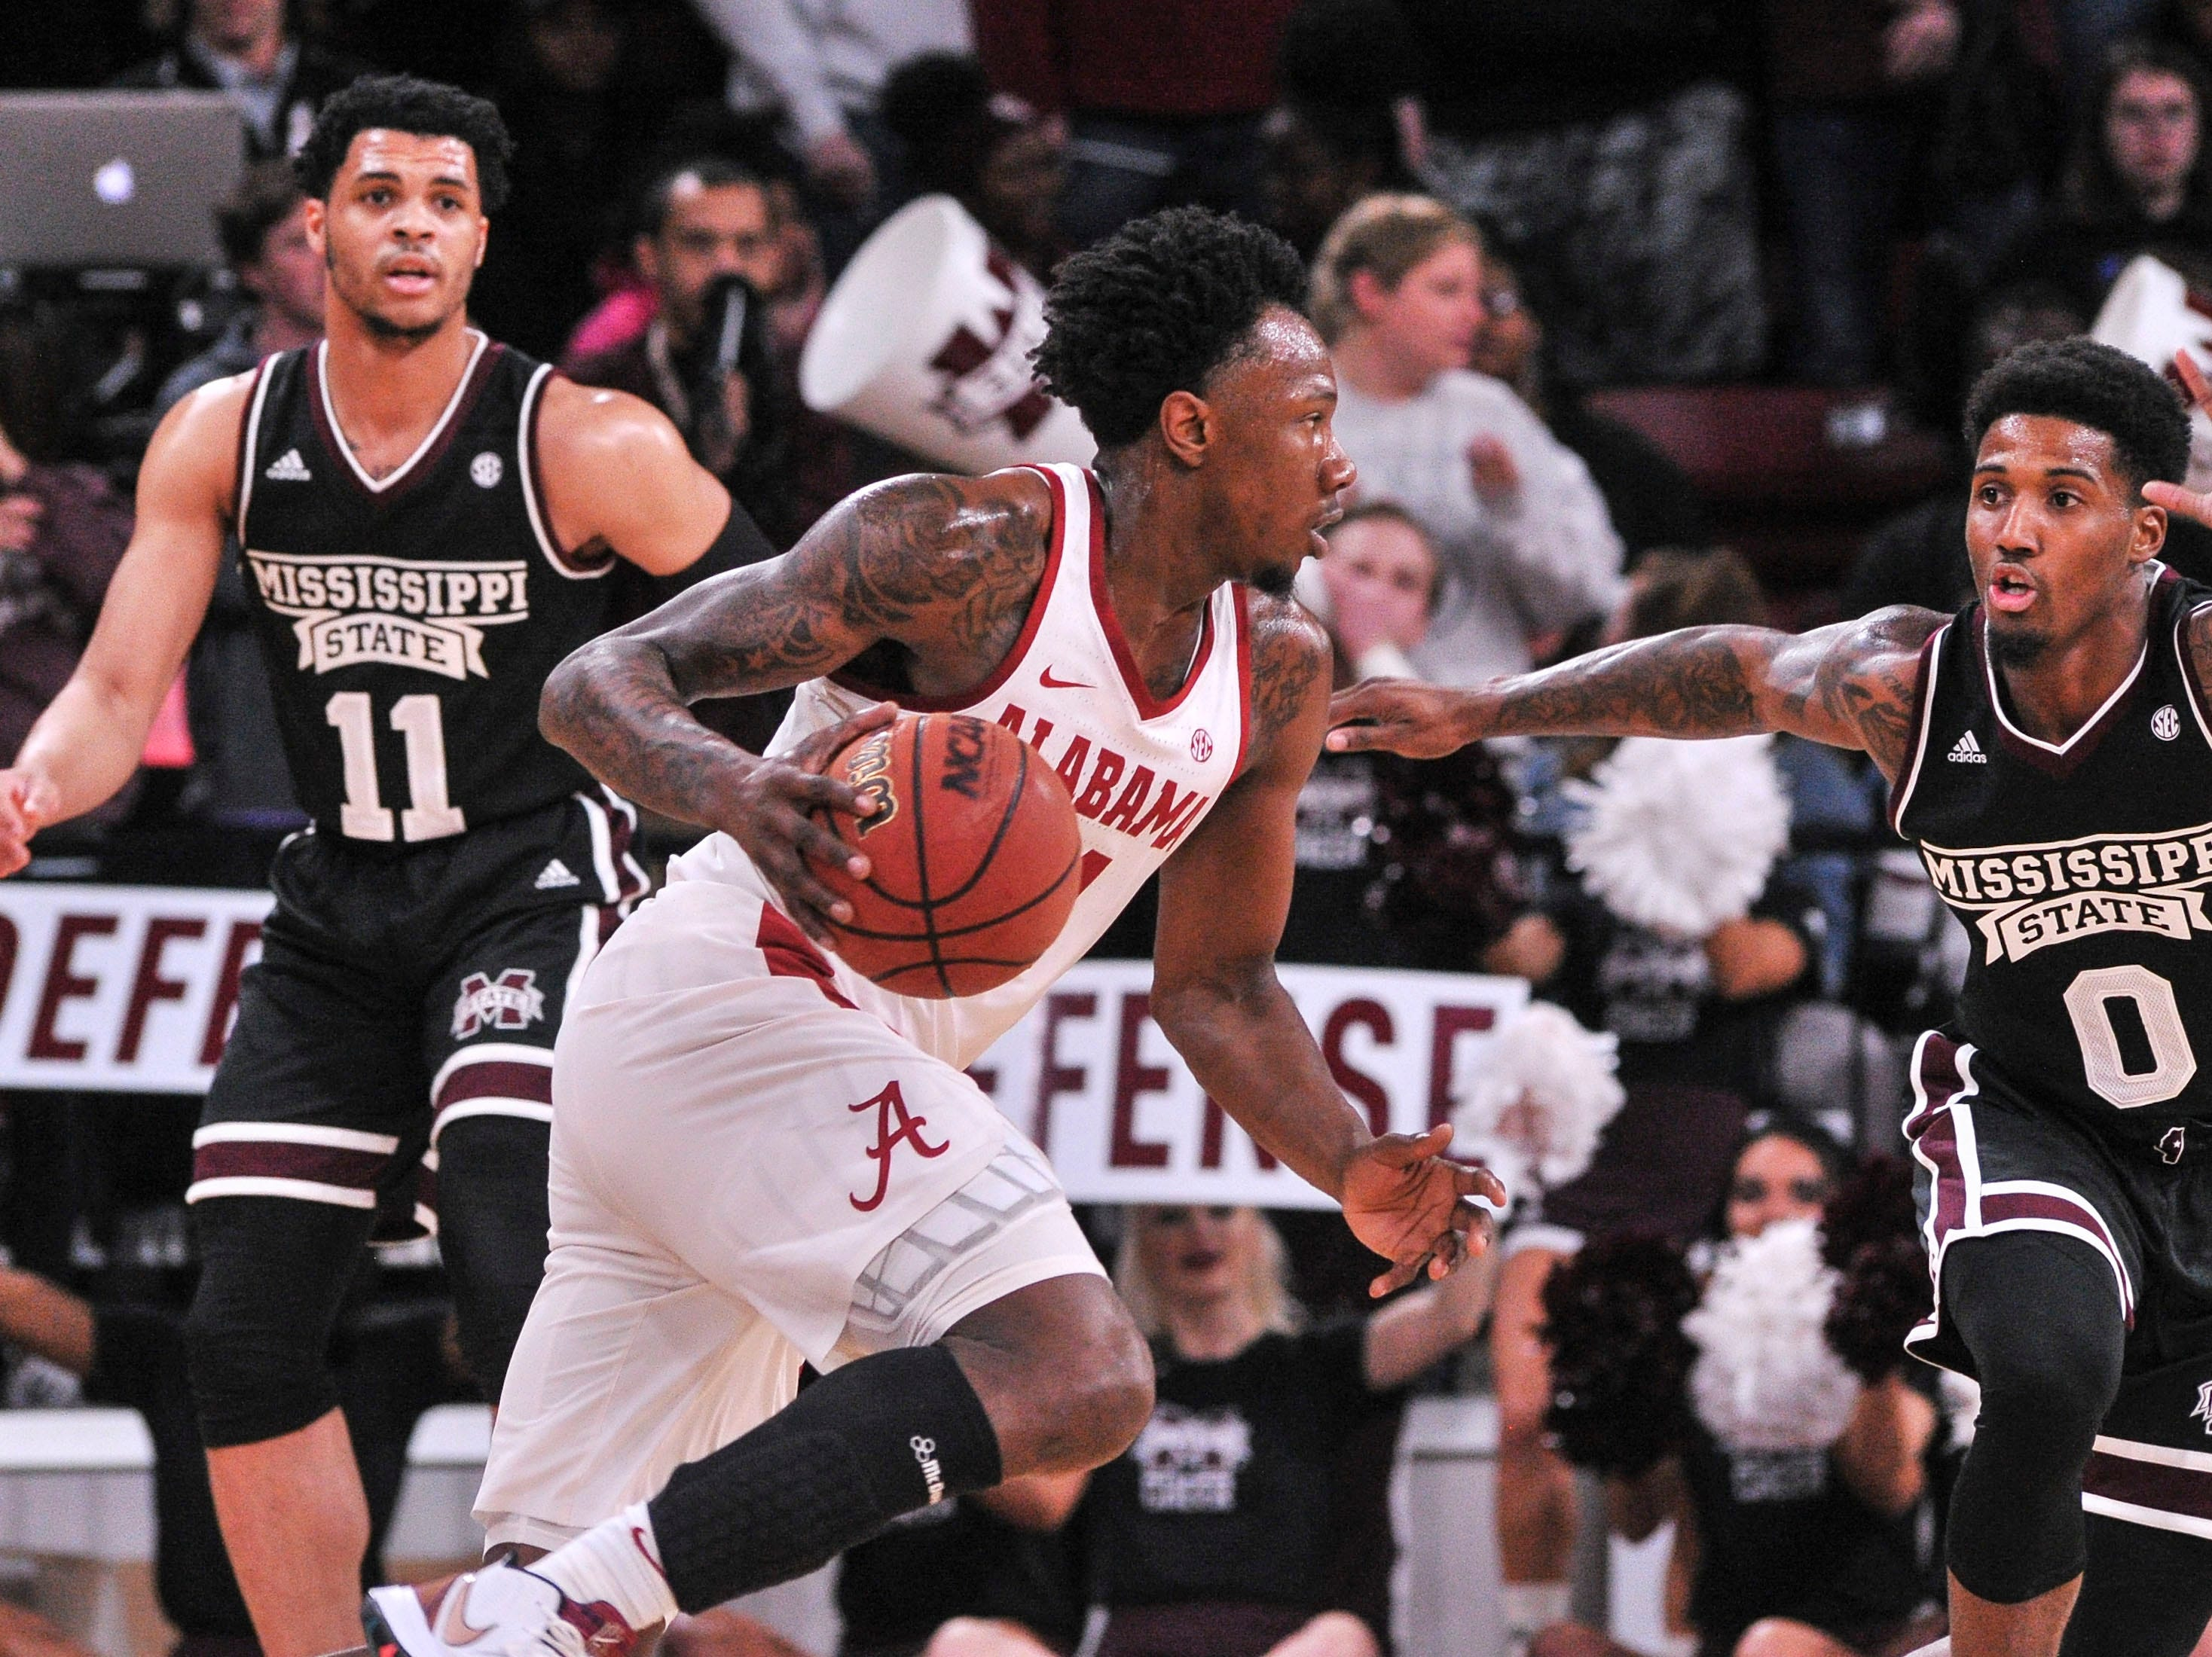 Feb 12, 2019; Starkville, MS, USA; Alabama Crimson Tide guard Tevin Mack (34) dribbles the ball past Mississippi State Bulldogs guard Nick Weatherspoon (0) during the first half at Humphrey Coliseum. Mandatory Credit: Justin Ford-USA TODAY Sports